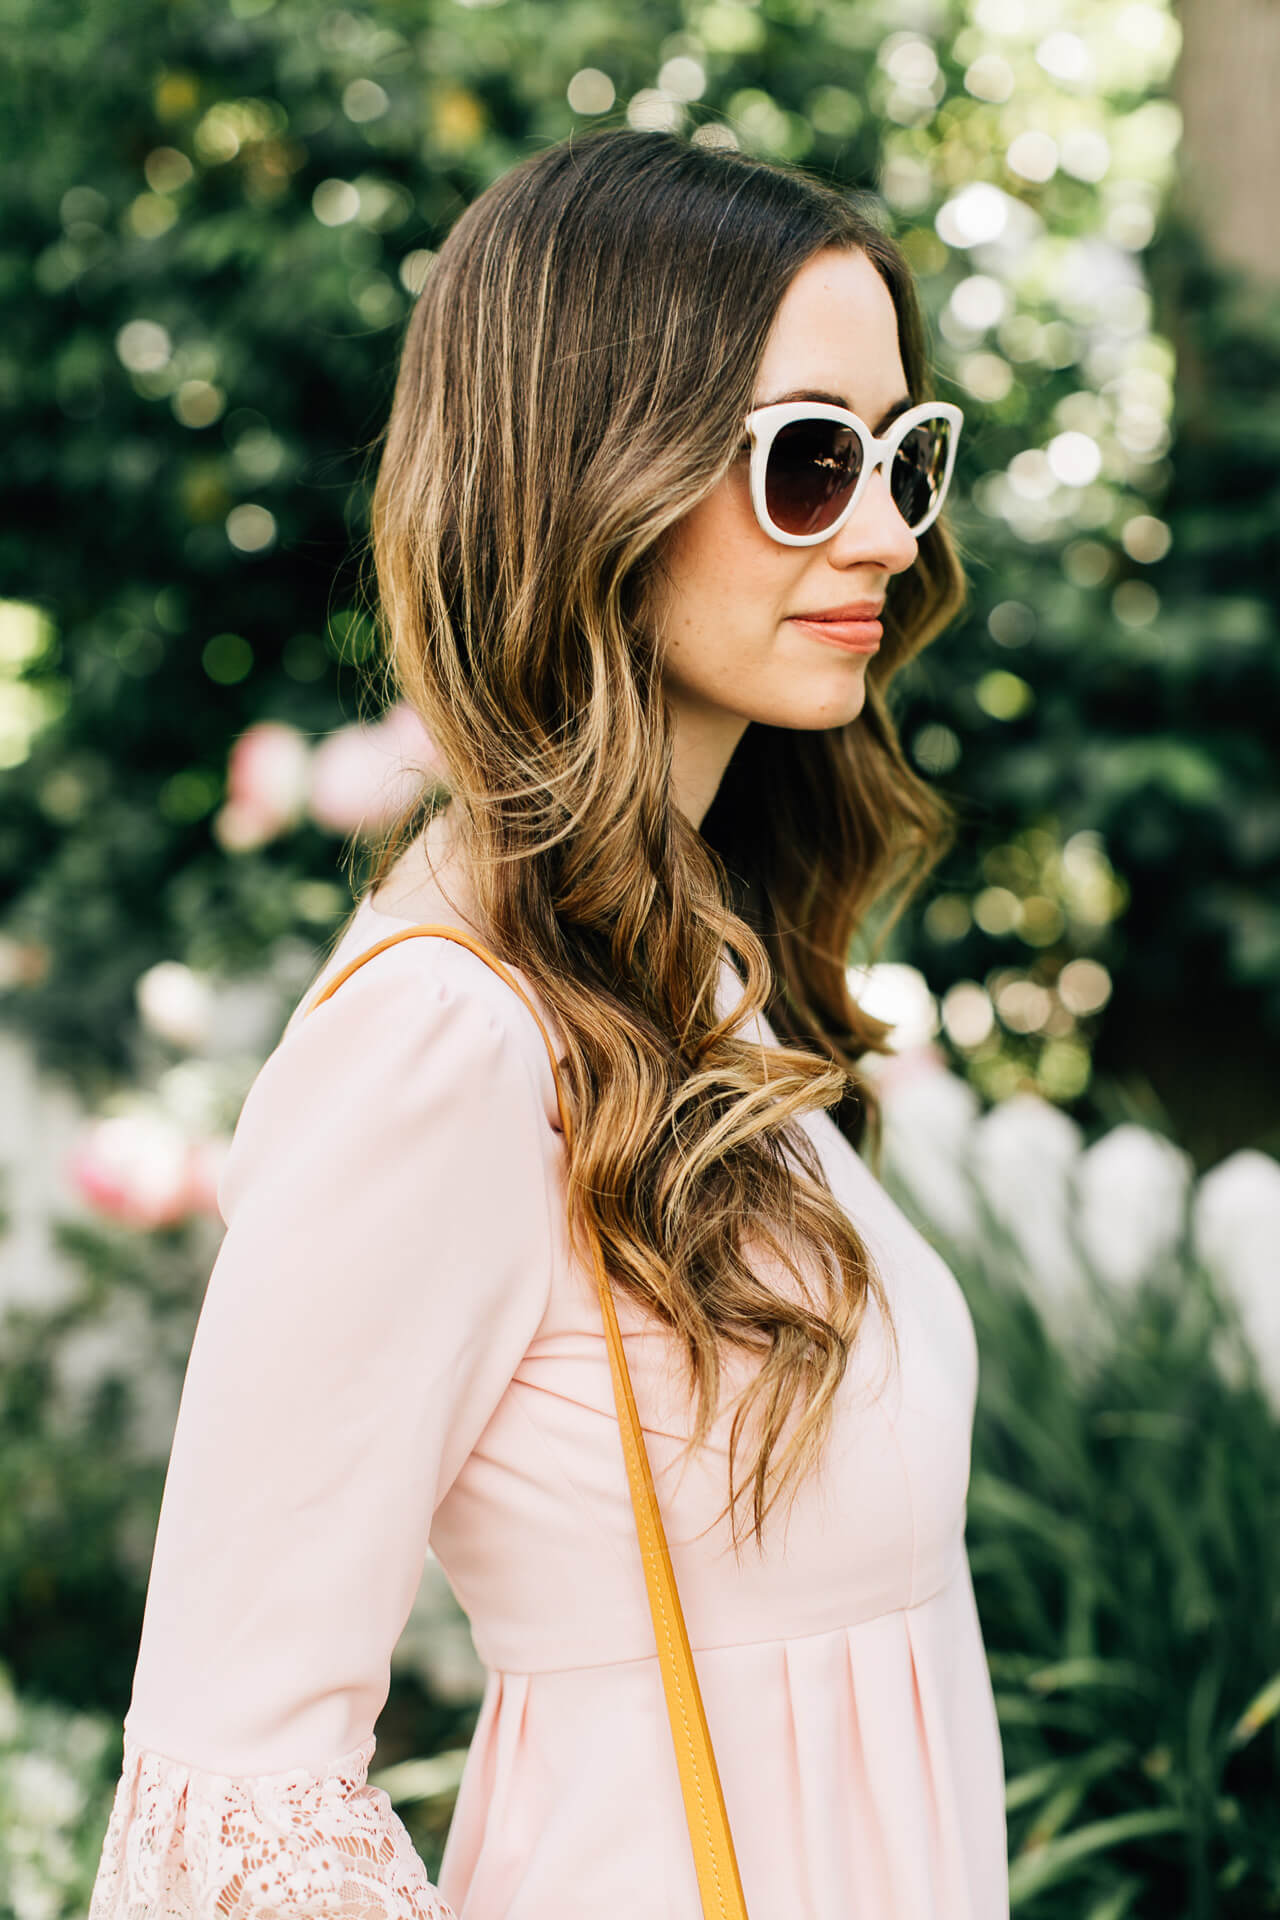 pink dress with white sunglasses